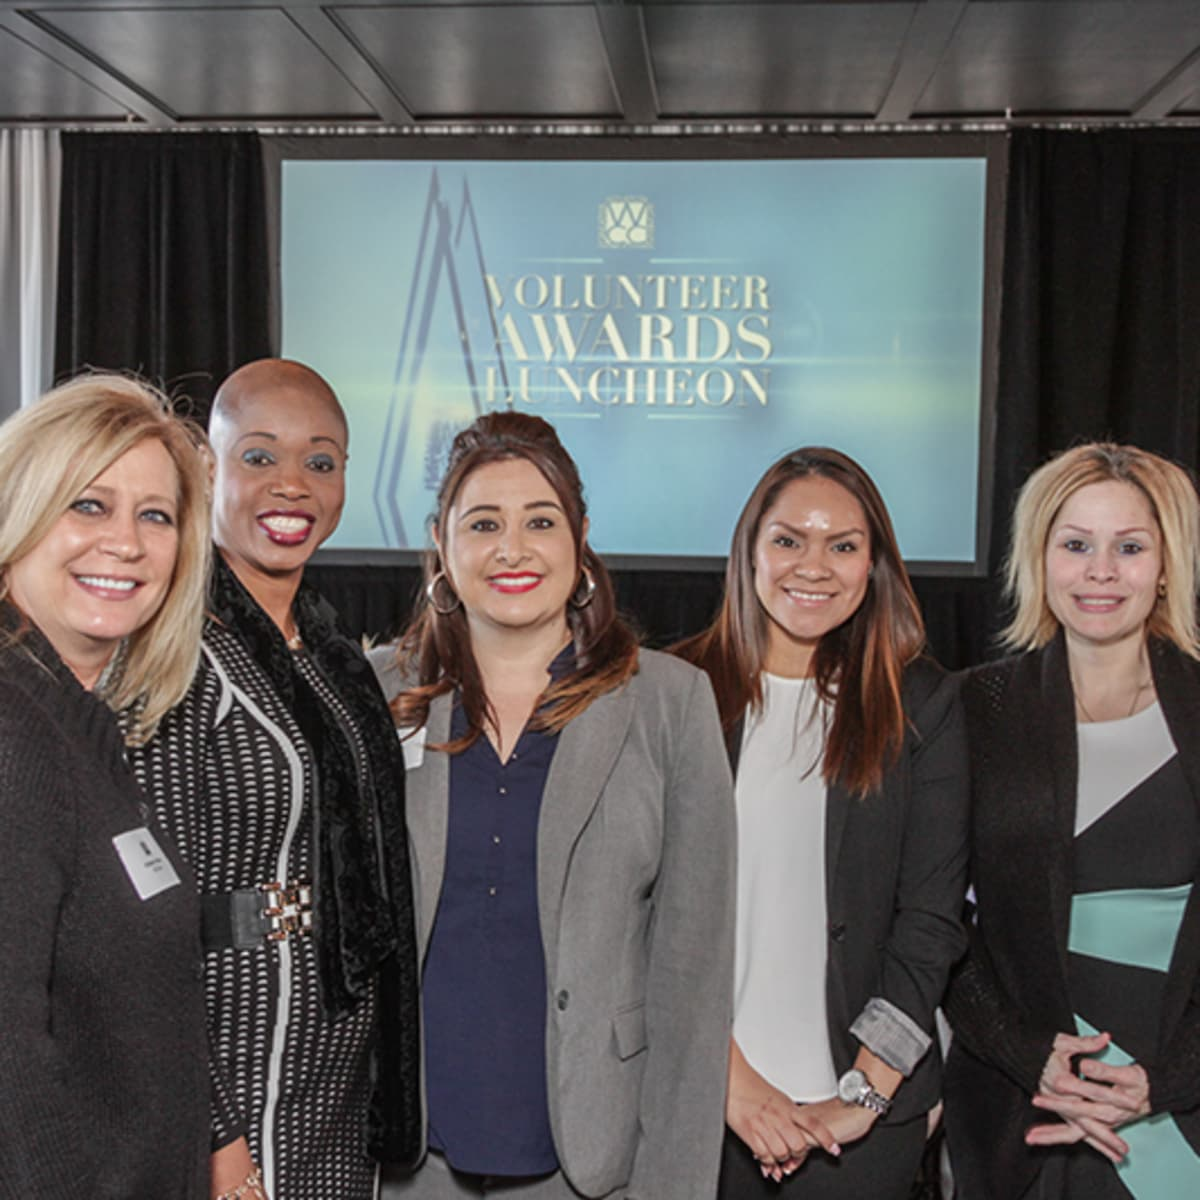 Greater Houston Women's Chamber of Commerce luncheon, Feb. 2016, Kimberly Renko, Anness Bertrand, Priscilla Silva, Matilde Juarez, Tabitha Rodriguez